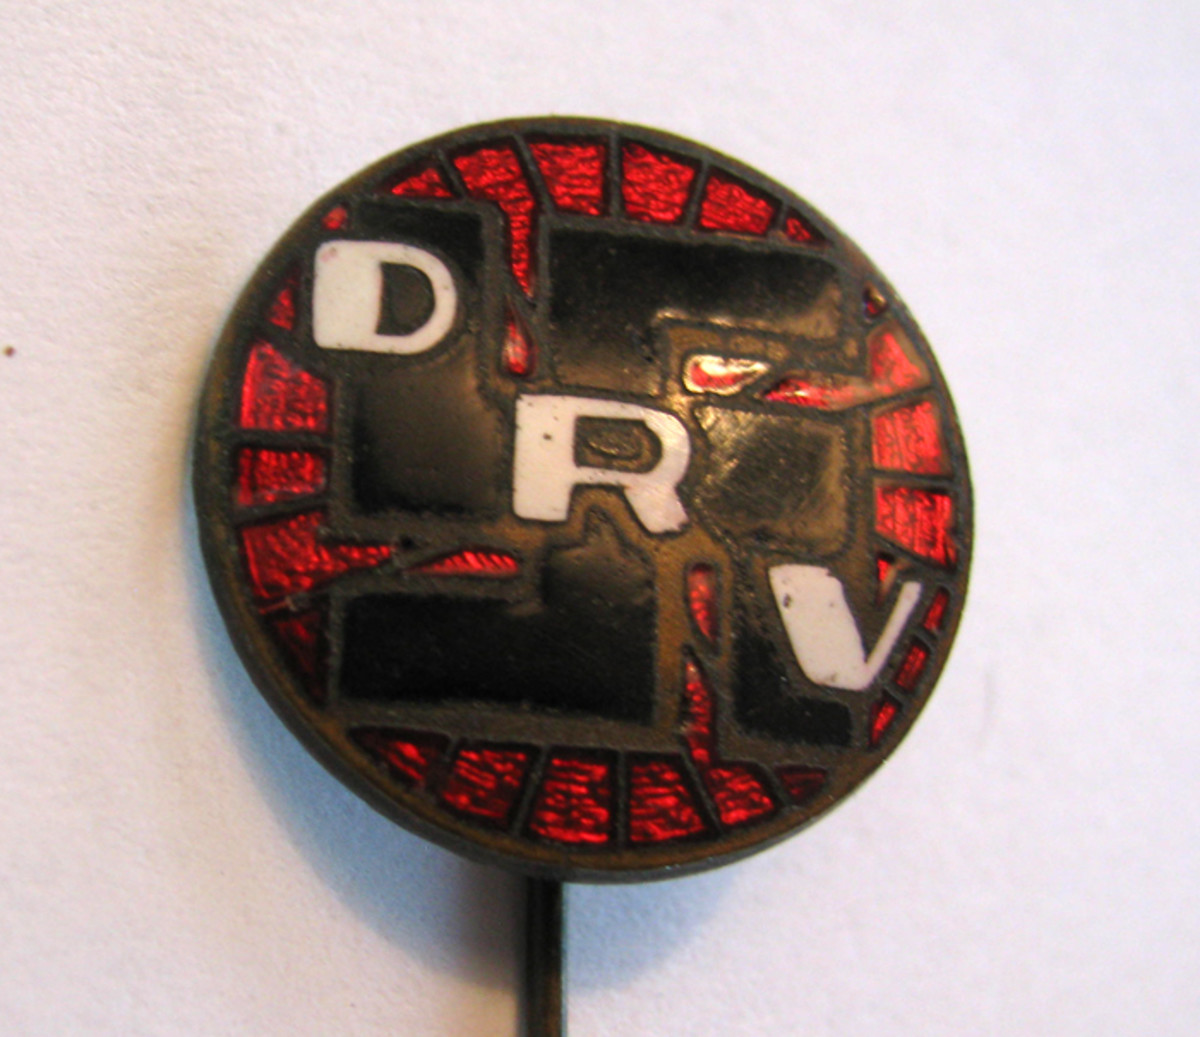 The DRV, German bicycle Association pin was a wheel supporting the club's initials.